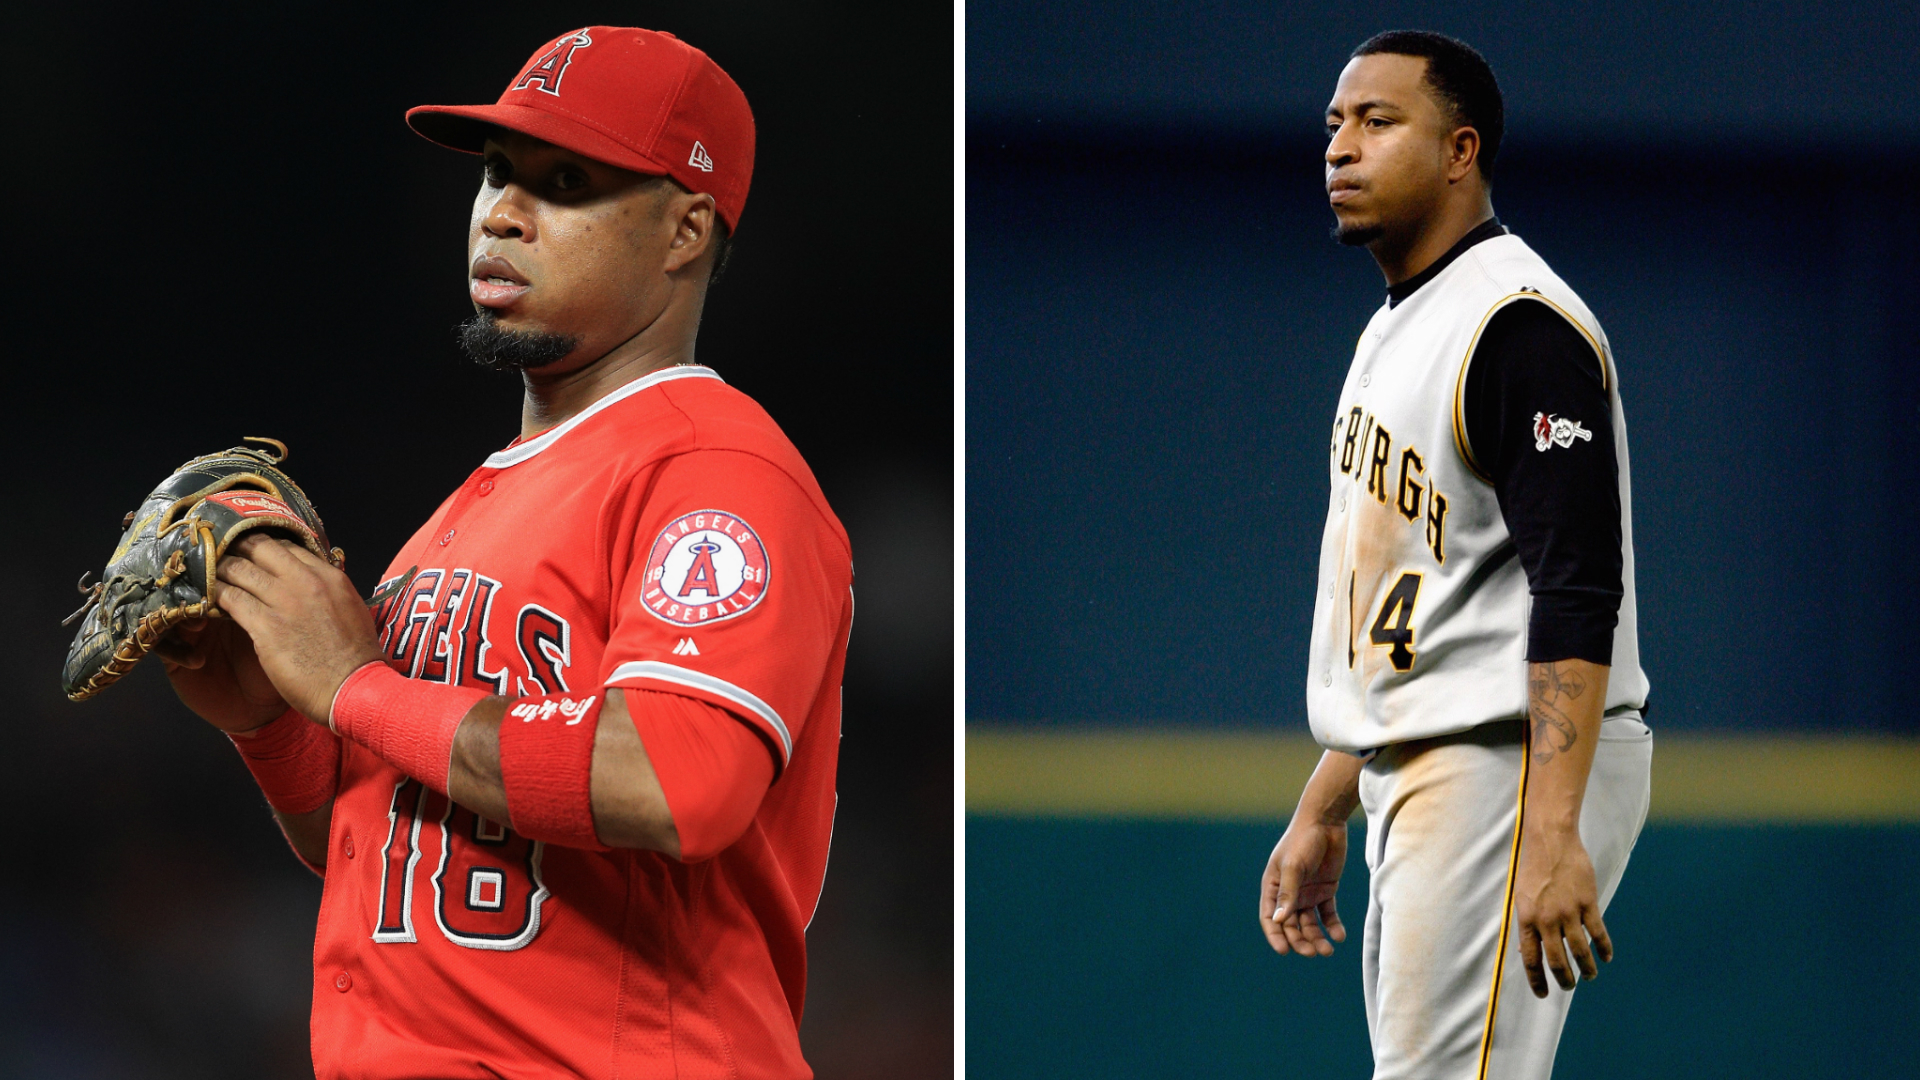 Major League Baseball  community reacts to the deaths of Luis Valbuena and Jose Castillo